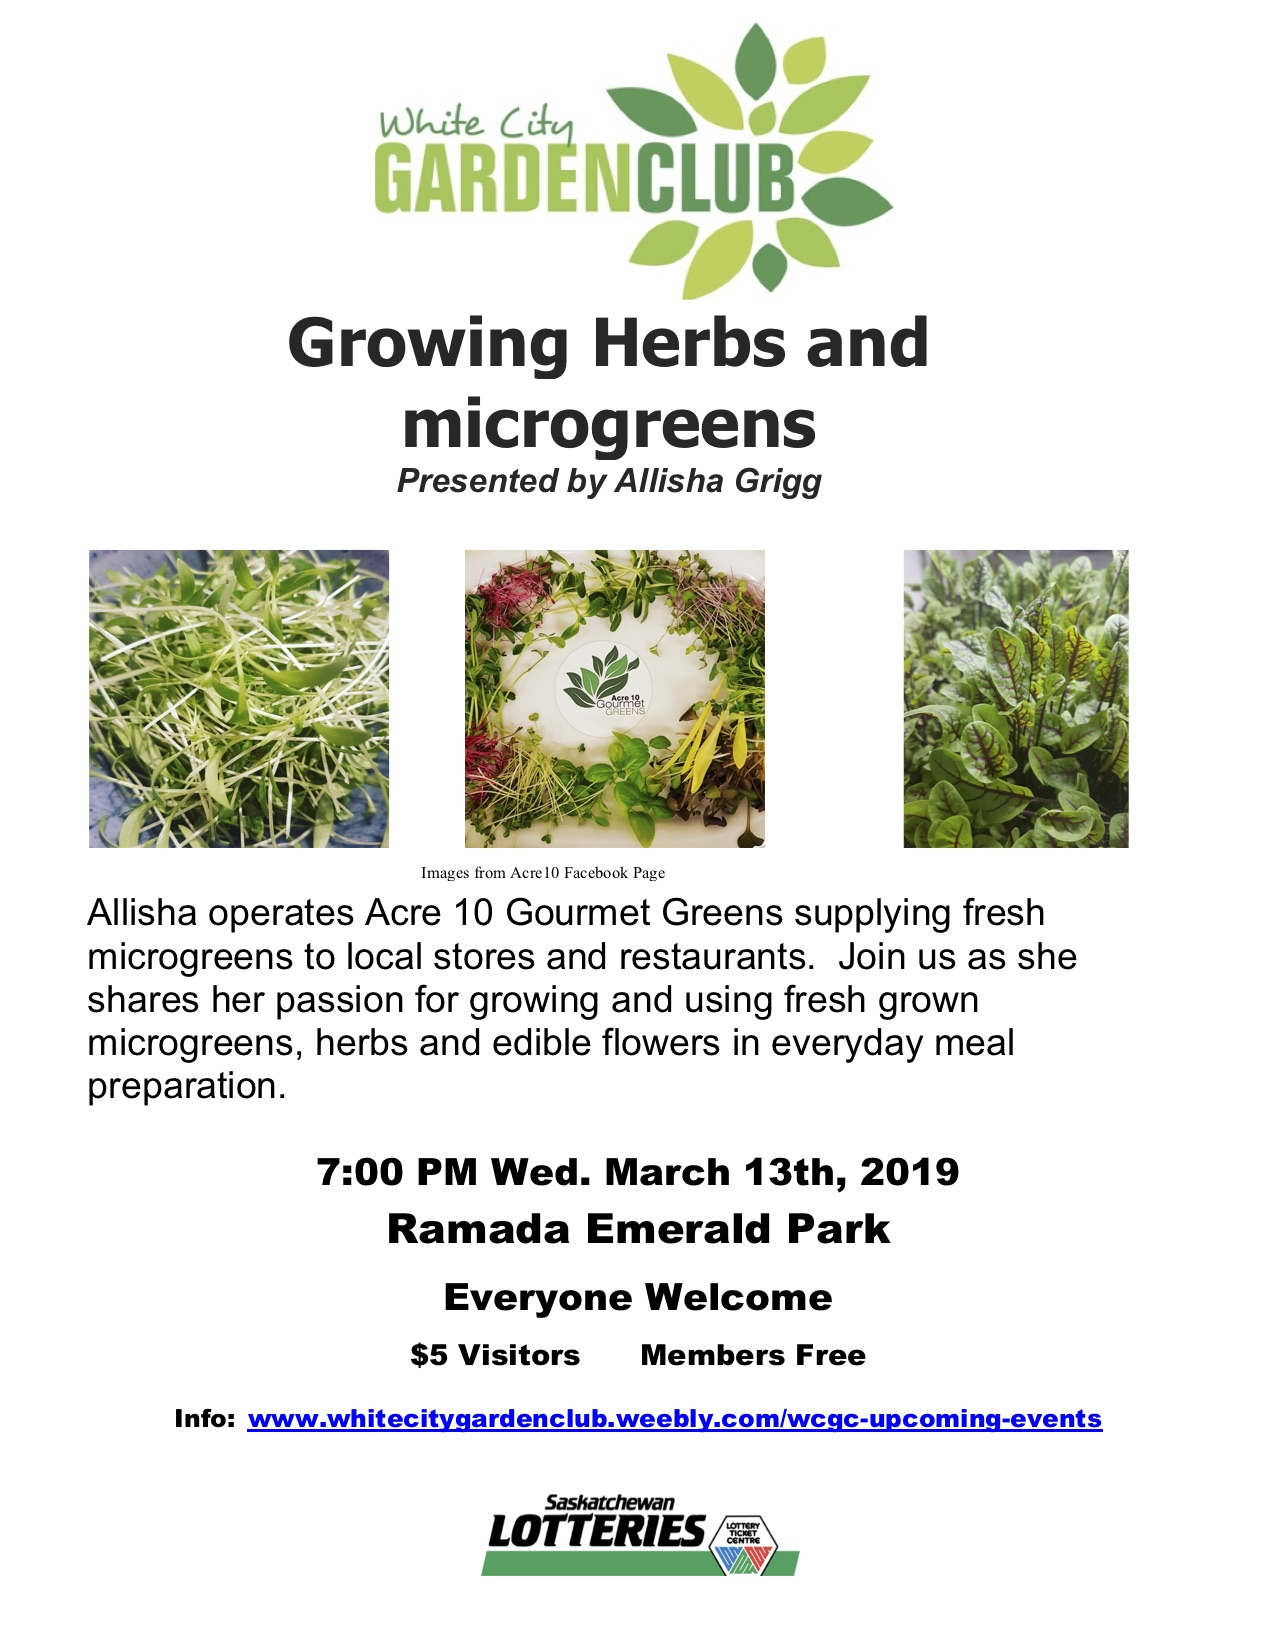 White City Garden Club: Growing Herbs and microgreens